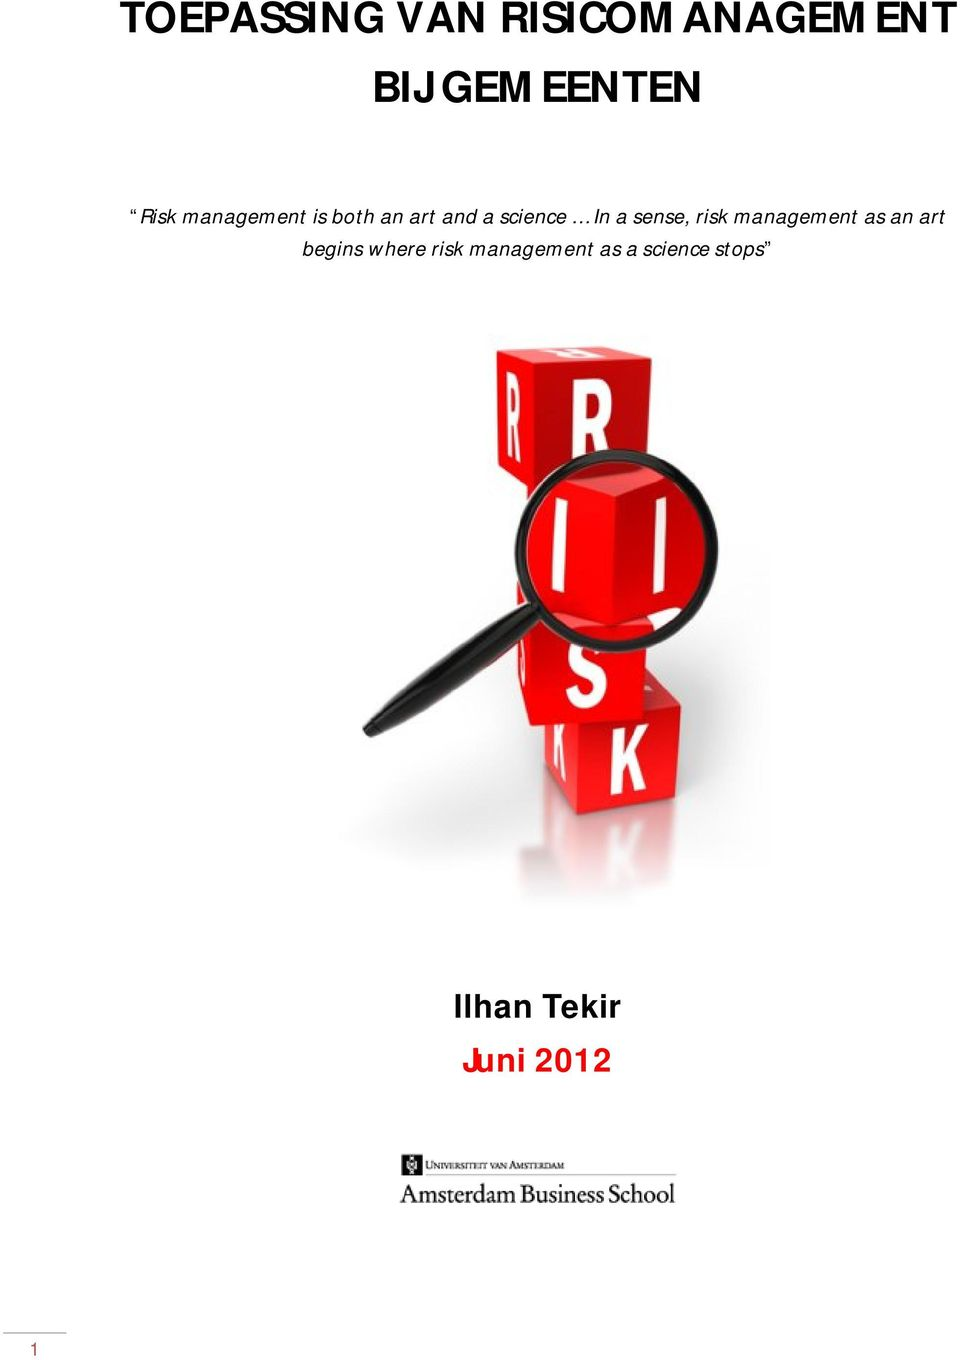 sense, risk management as an art begins where